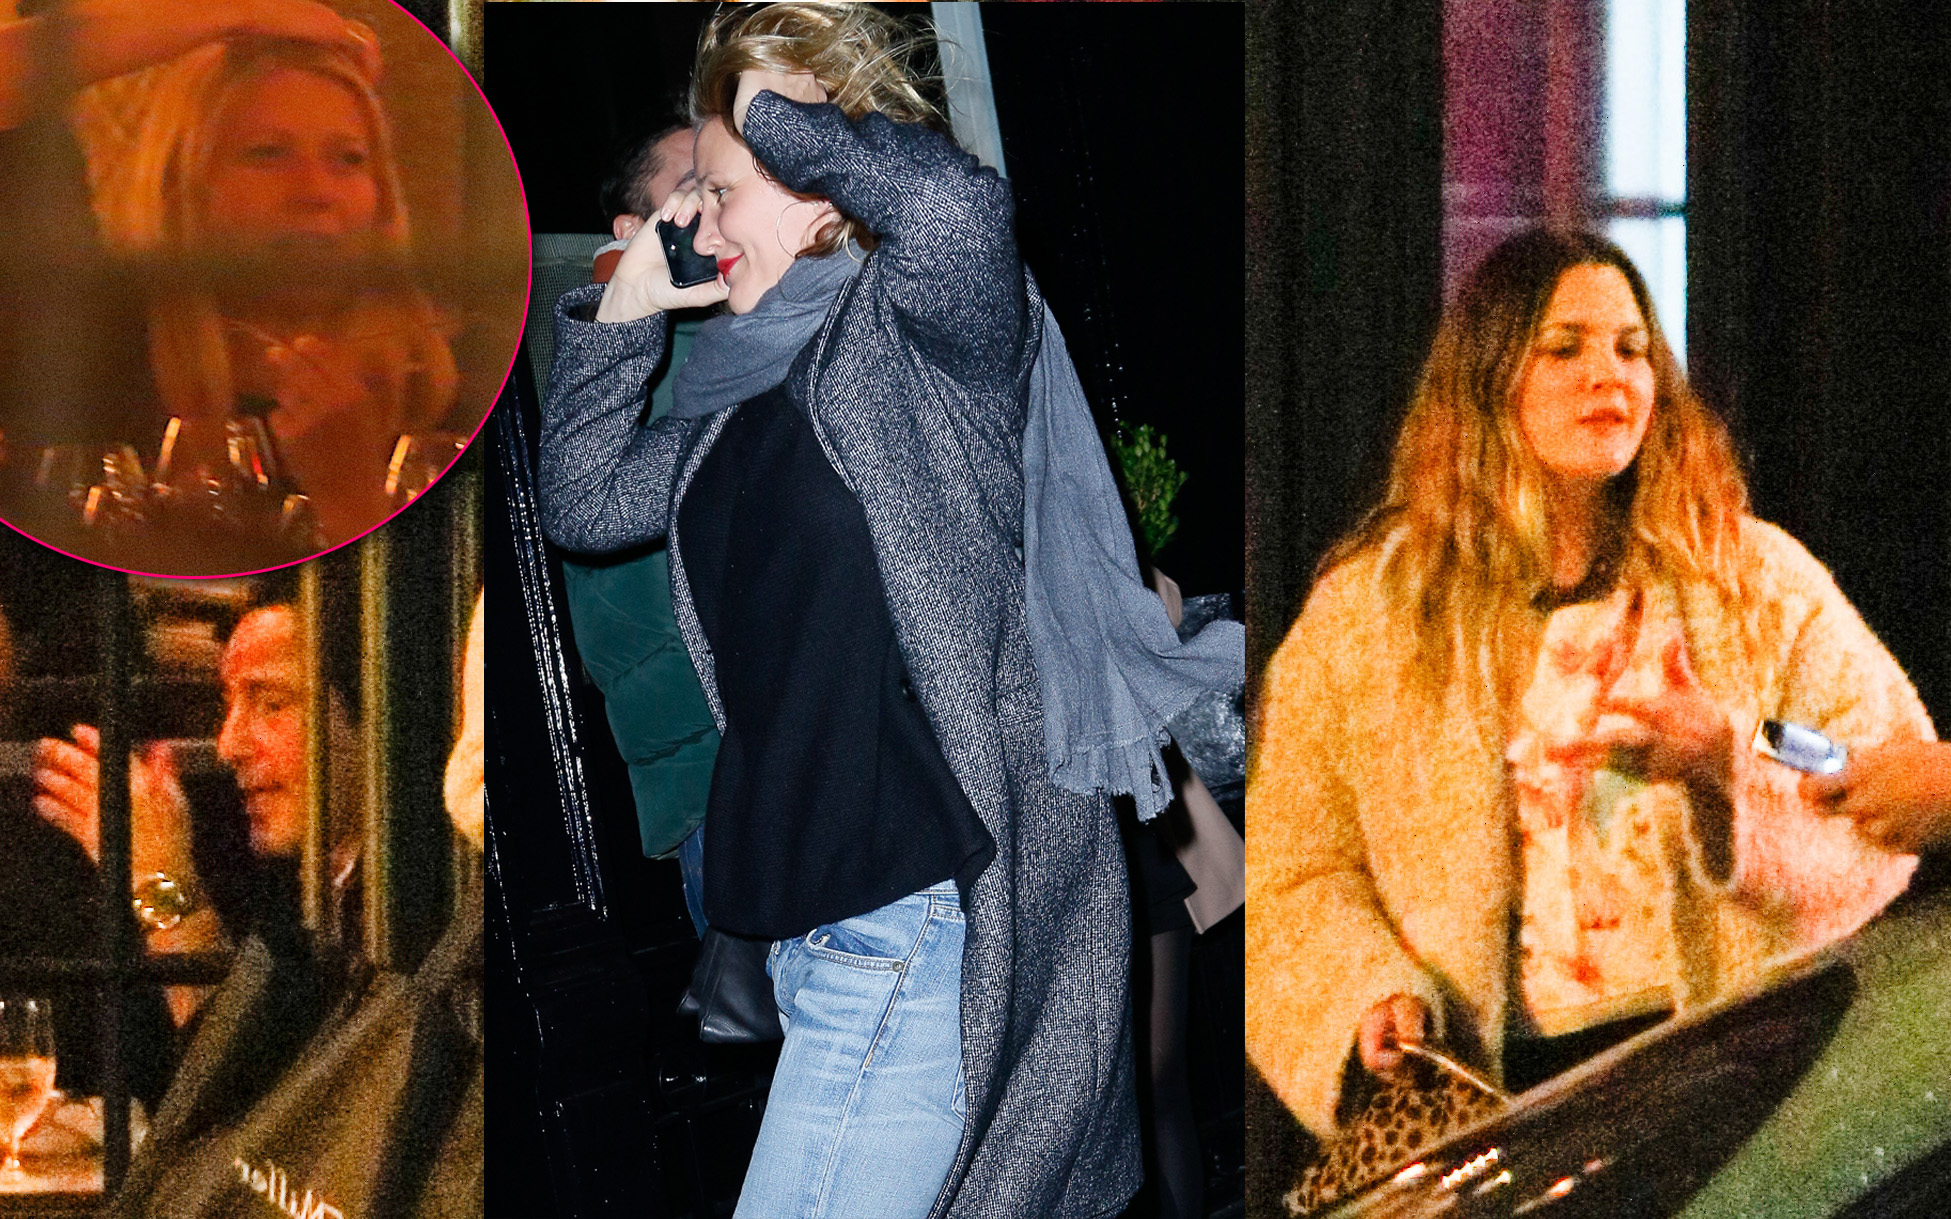 EXCLUSIVE: Gwyneth Paltrow, Cameron Diaz and Drew Barrymore are seen out and about for a late night dinner.